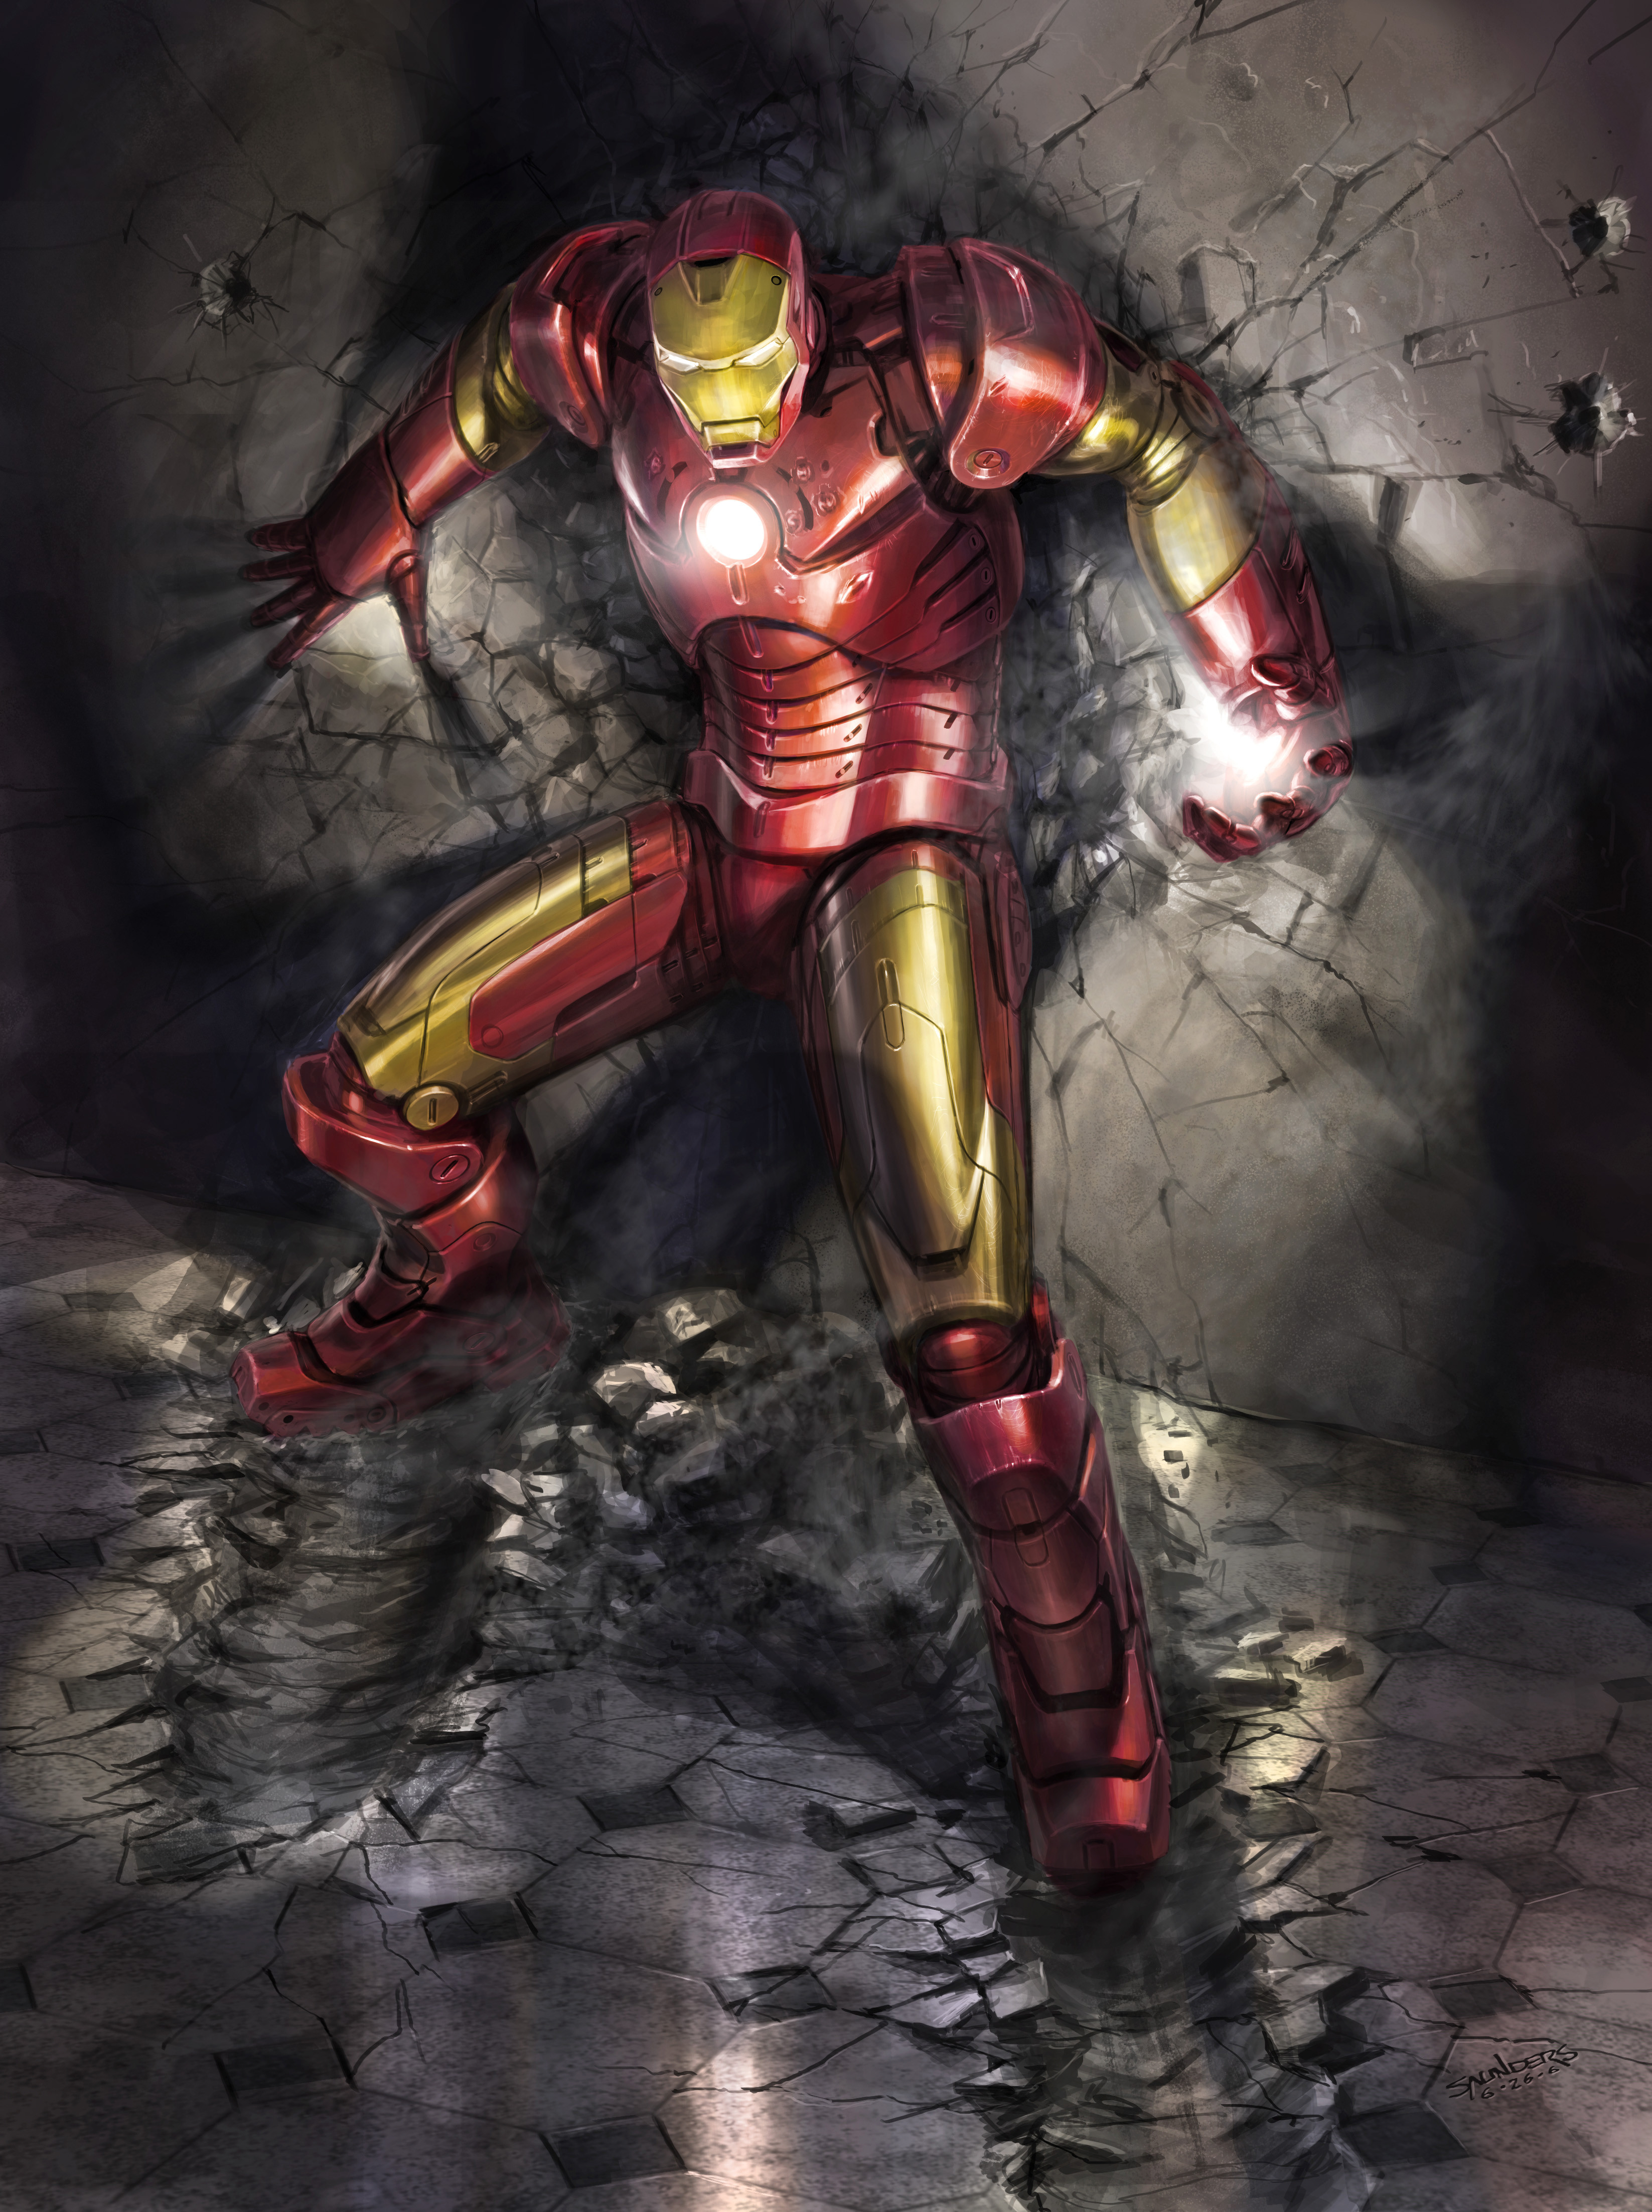 An early image showing how the suit plates would flex, particularly around the problematic chest/shoulder area.